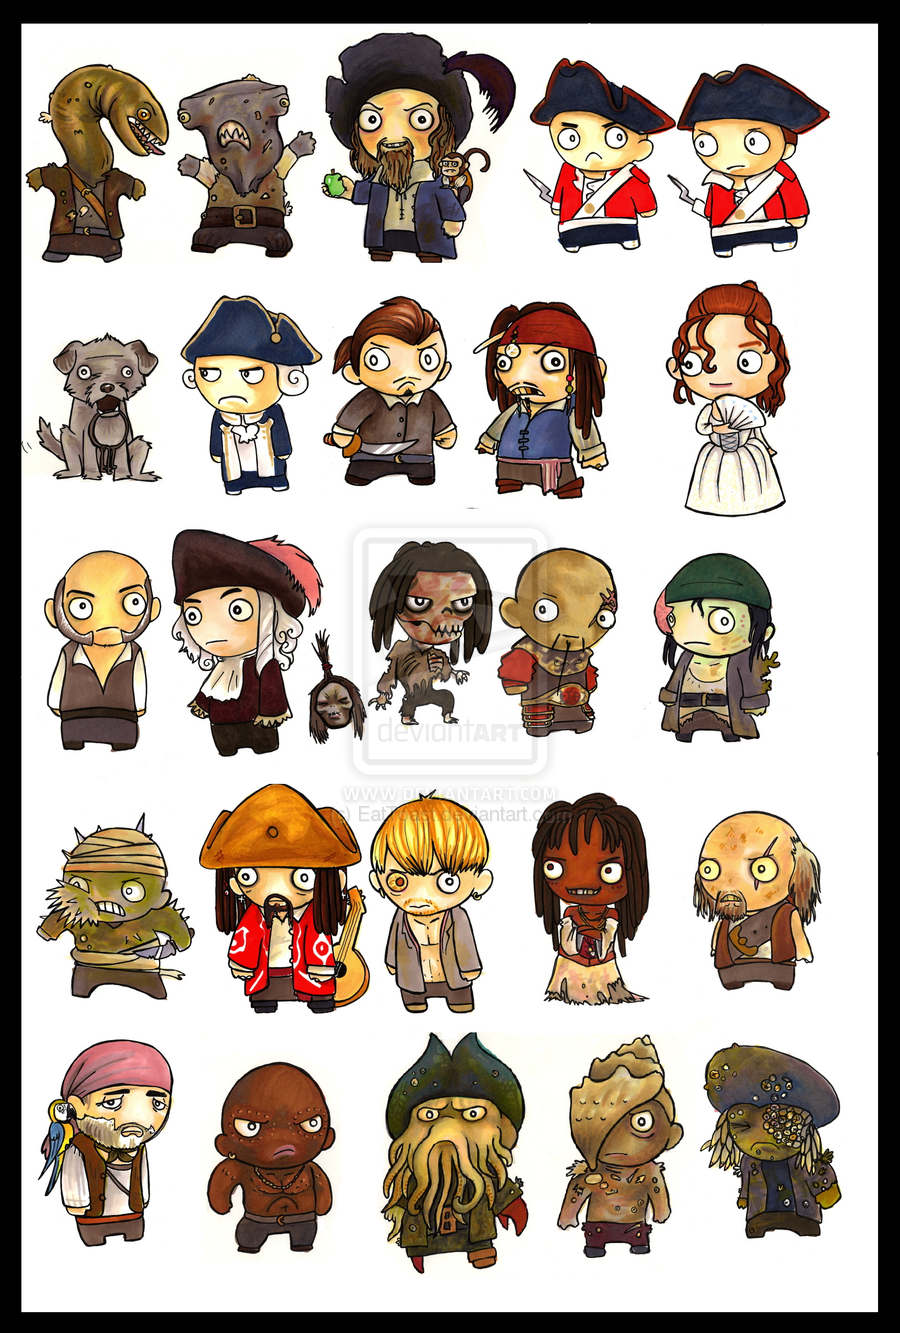 Pirates Of The Caribbean clipart carabian #1